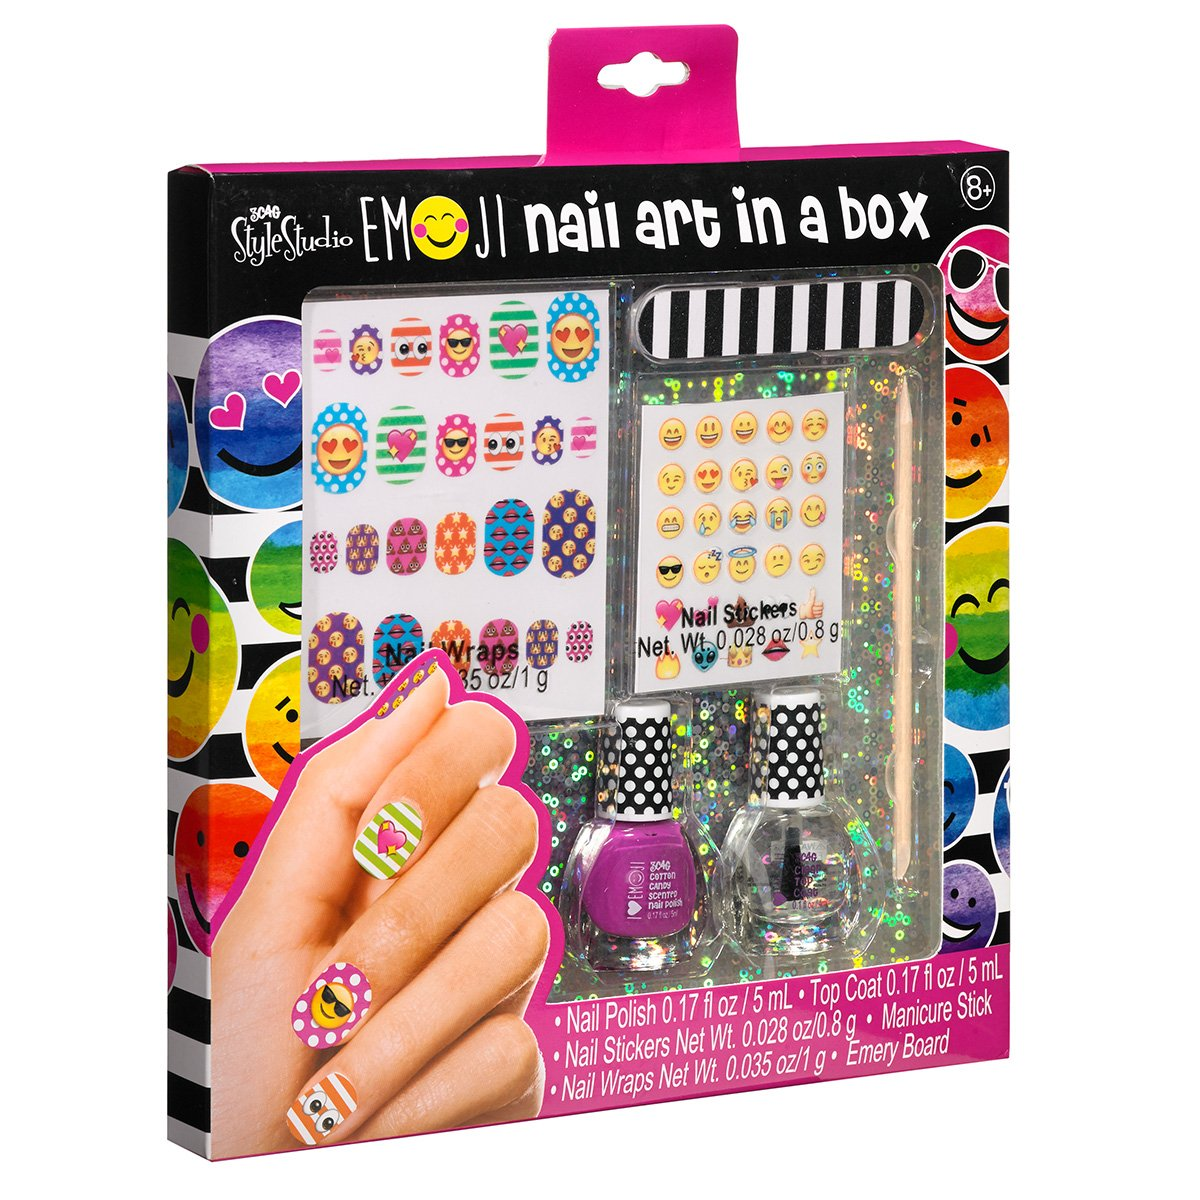 85off 3c4g three cheers for girls nail polish nail art kit in a 85off 3c4g three cheers for girls nail polish nail art kit in a box prinsesfo Images